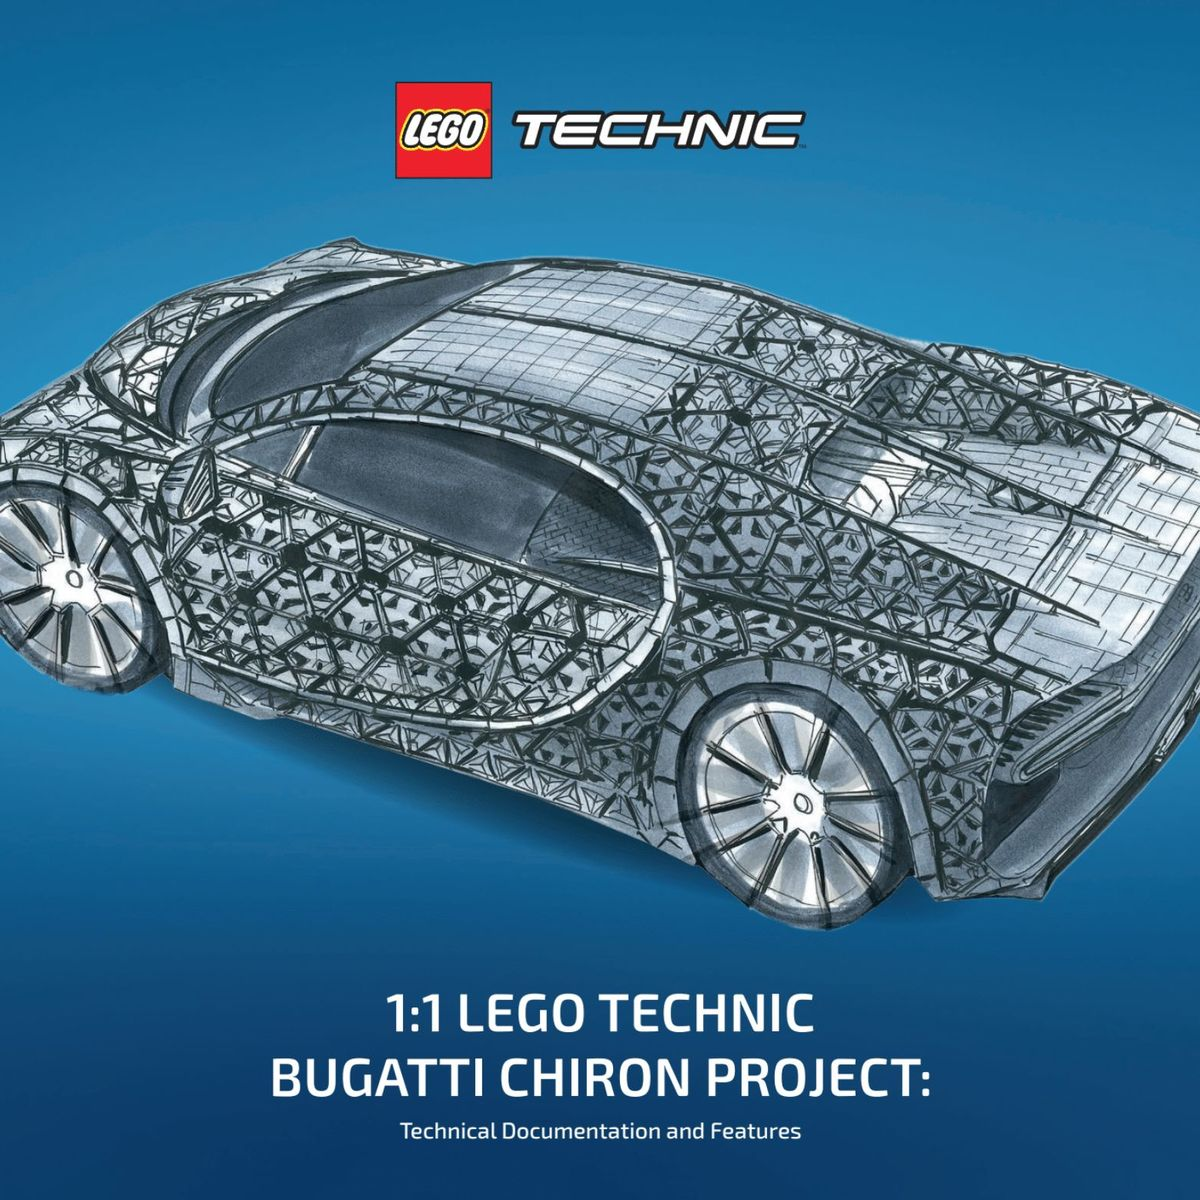 Lego built a life-size Bugatti Chiron you can drive